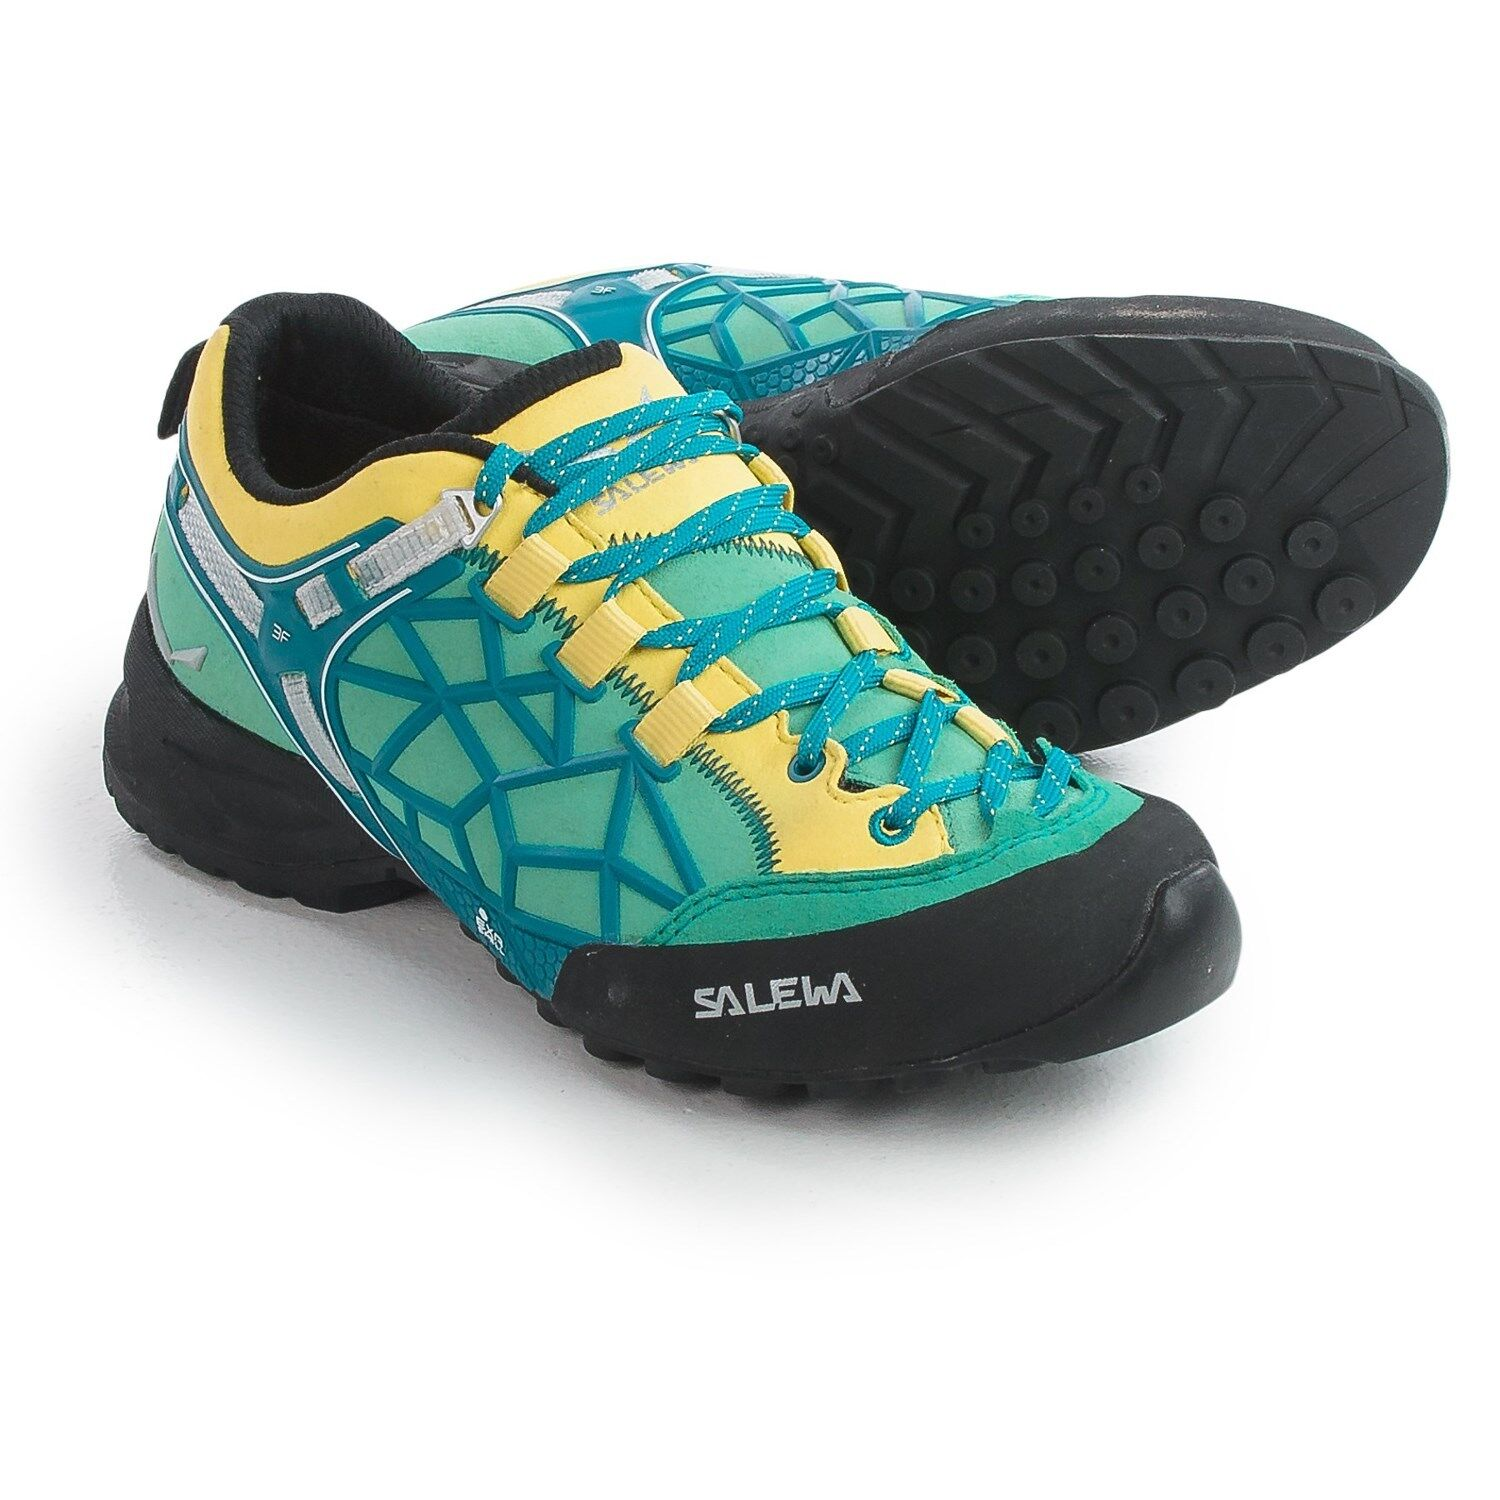 New Donna`s Salewa Wildfire Pro Hiking Shoes MSRP 200